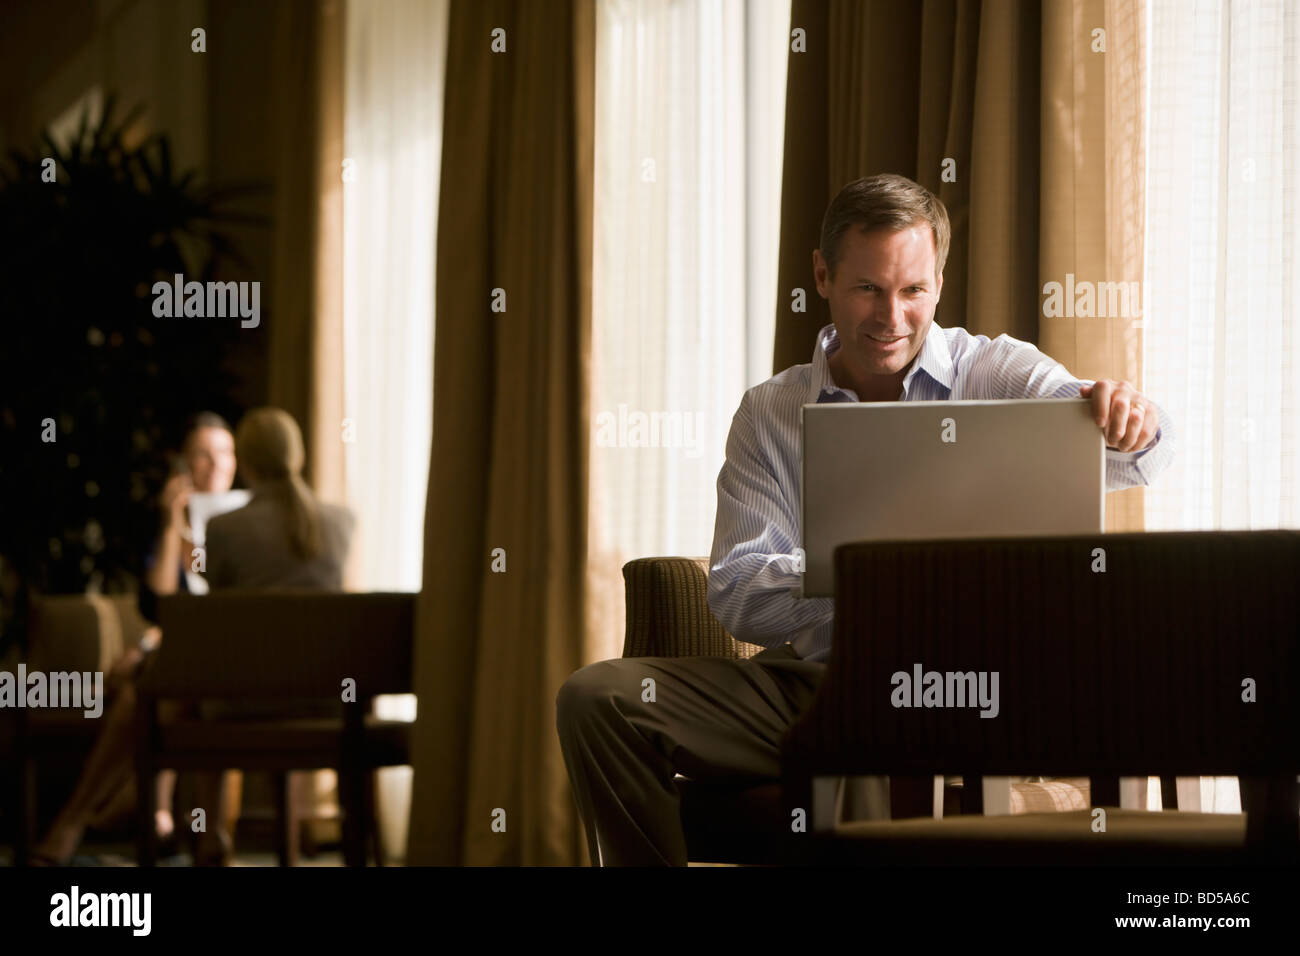 Business people in a lobby Stock Photo